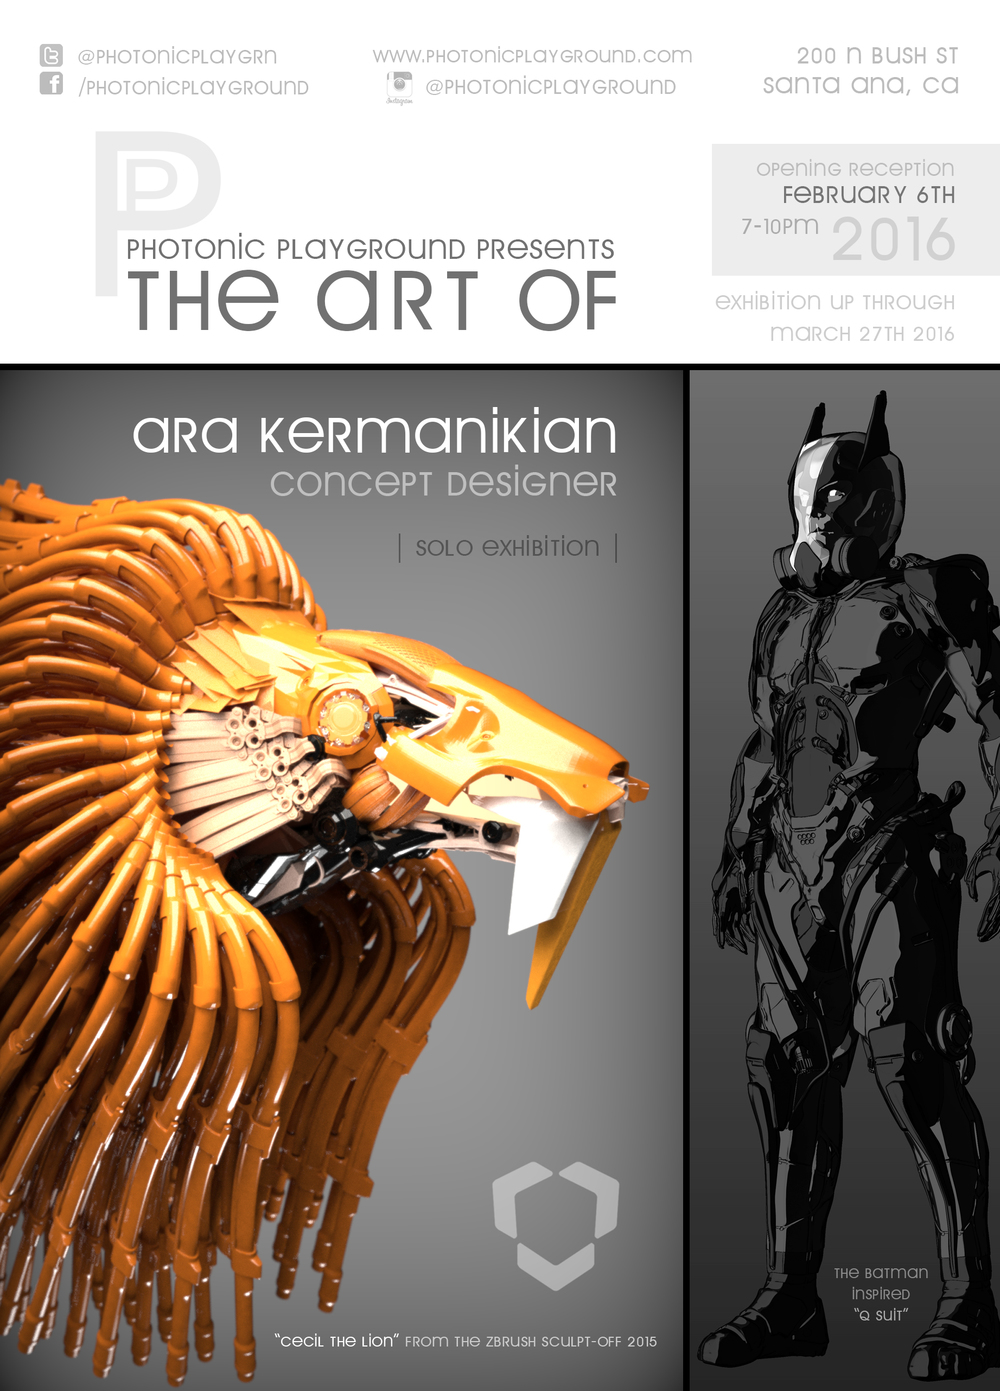 Marketing poster for the upcoming solo exhibition art show by Ara Kermanikian.